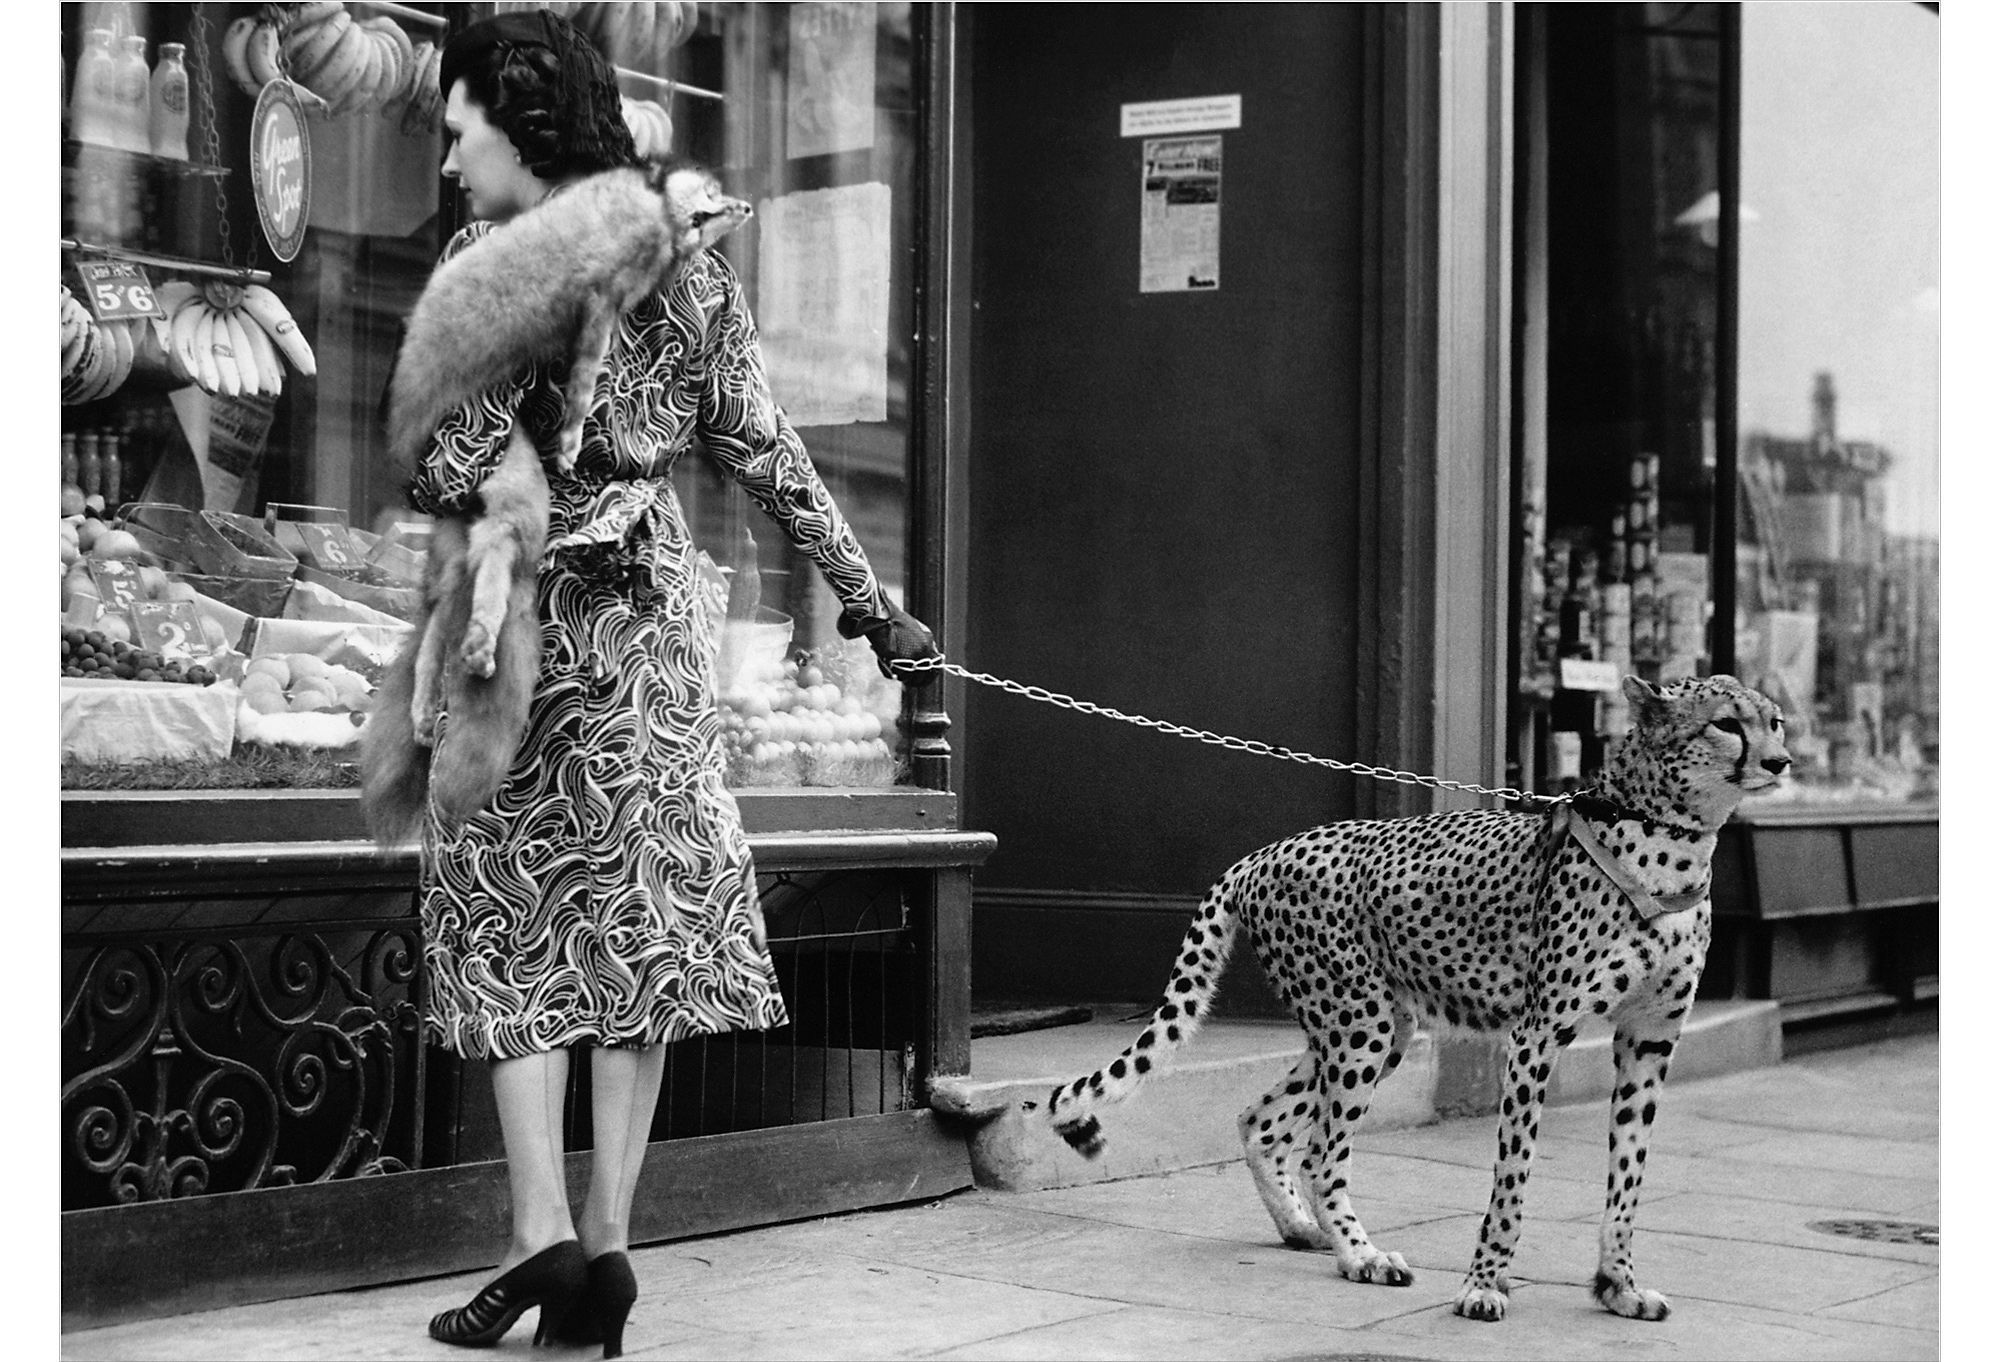 William Stafford Gallery Andy Irvine, Cheetah Who Shops